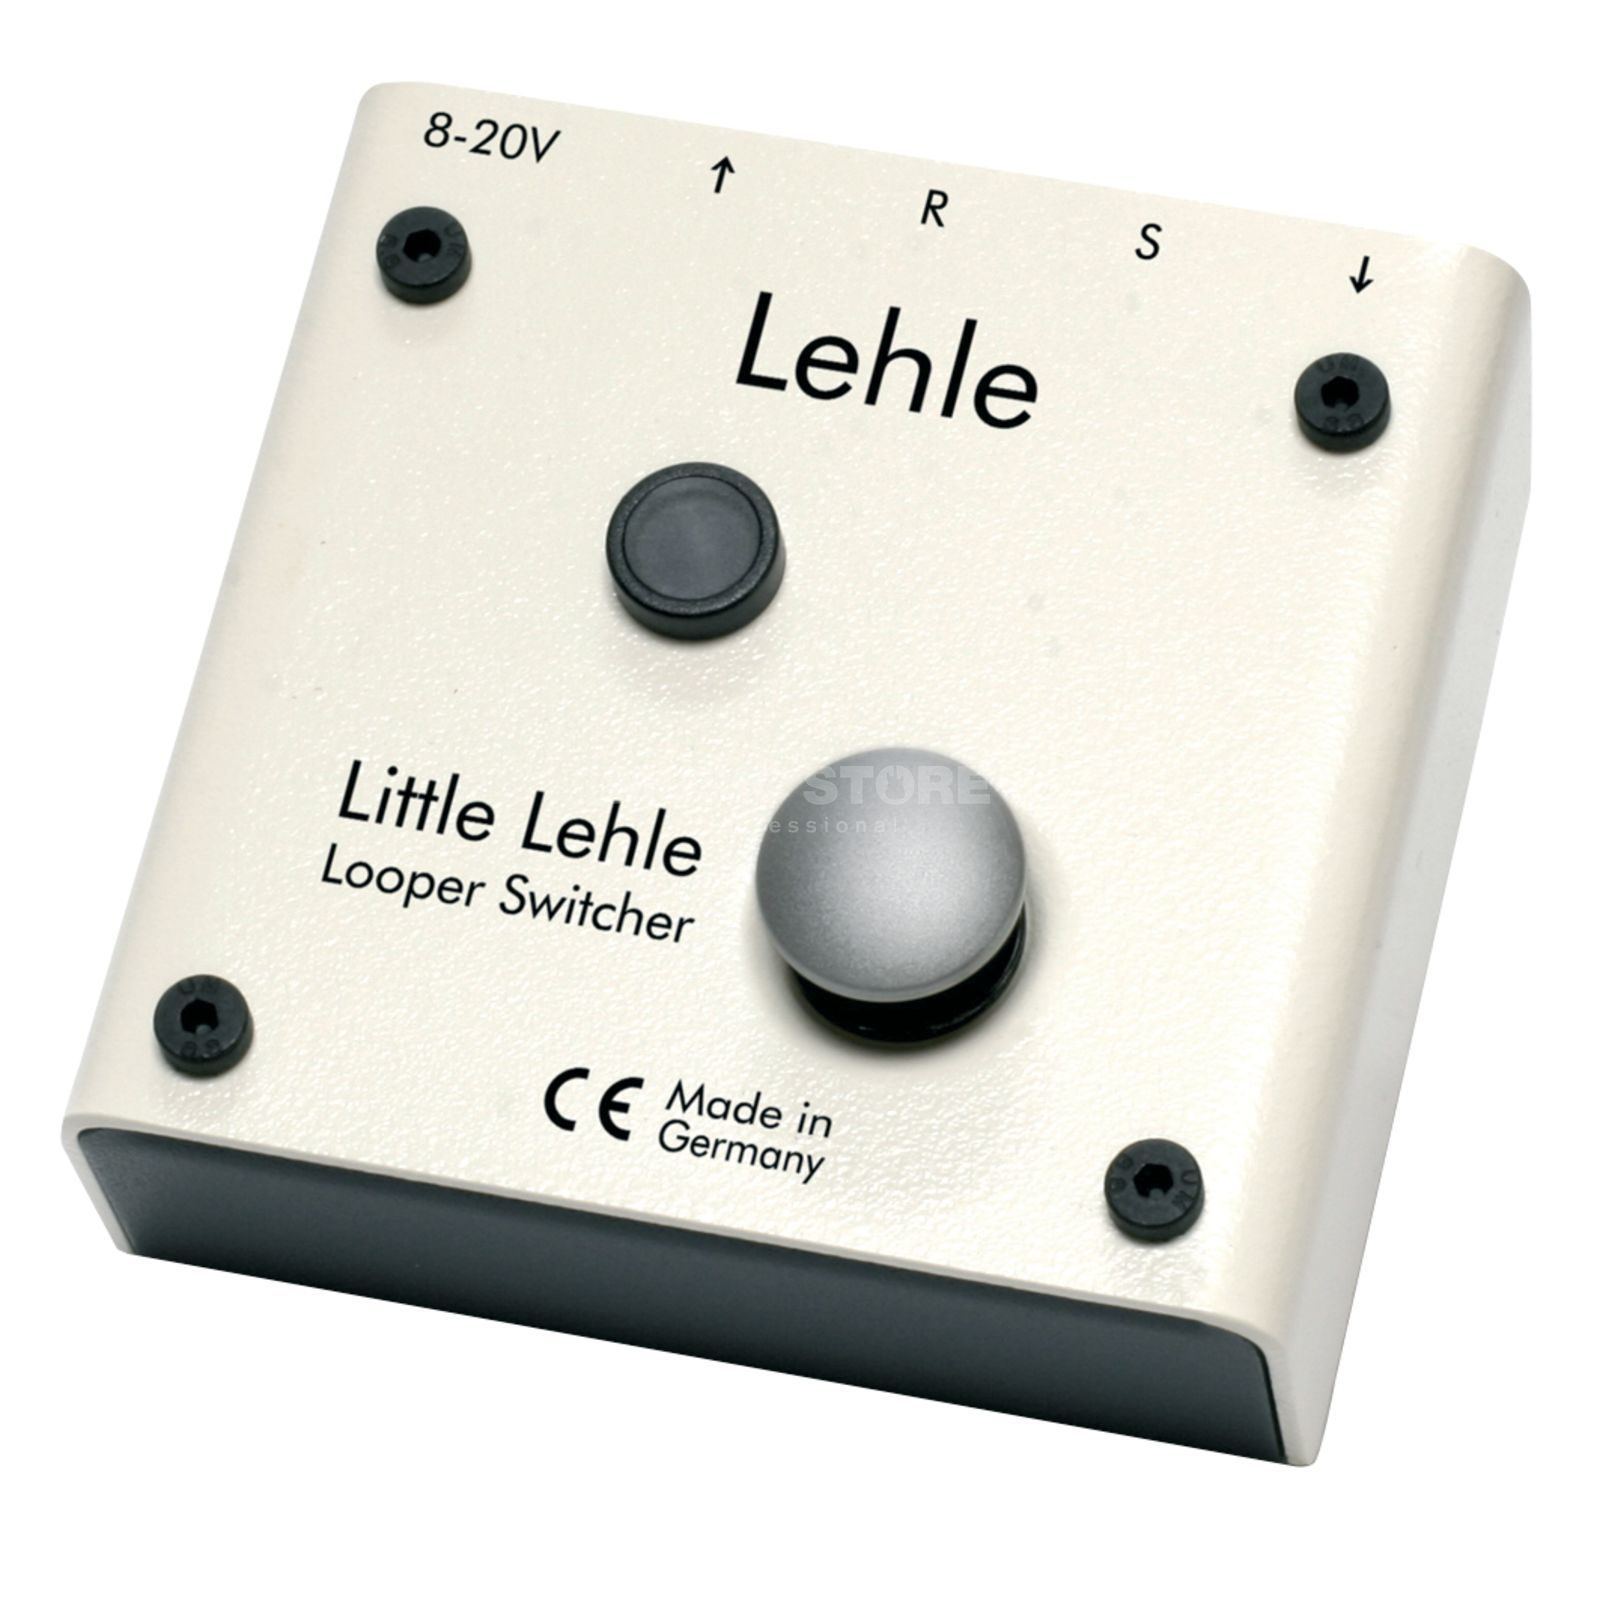 Lehle 1016 Little Lehle II Switcher  Produktbillede